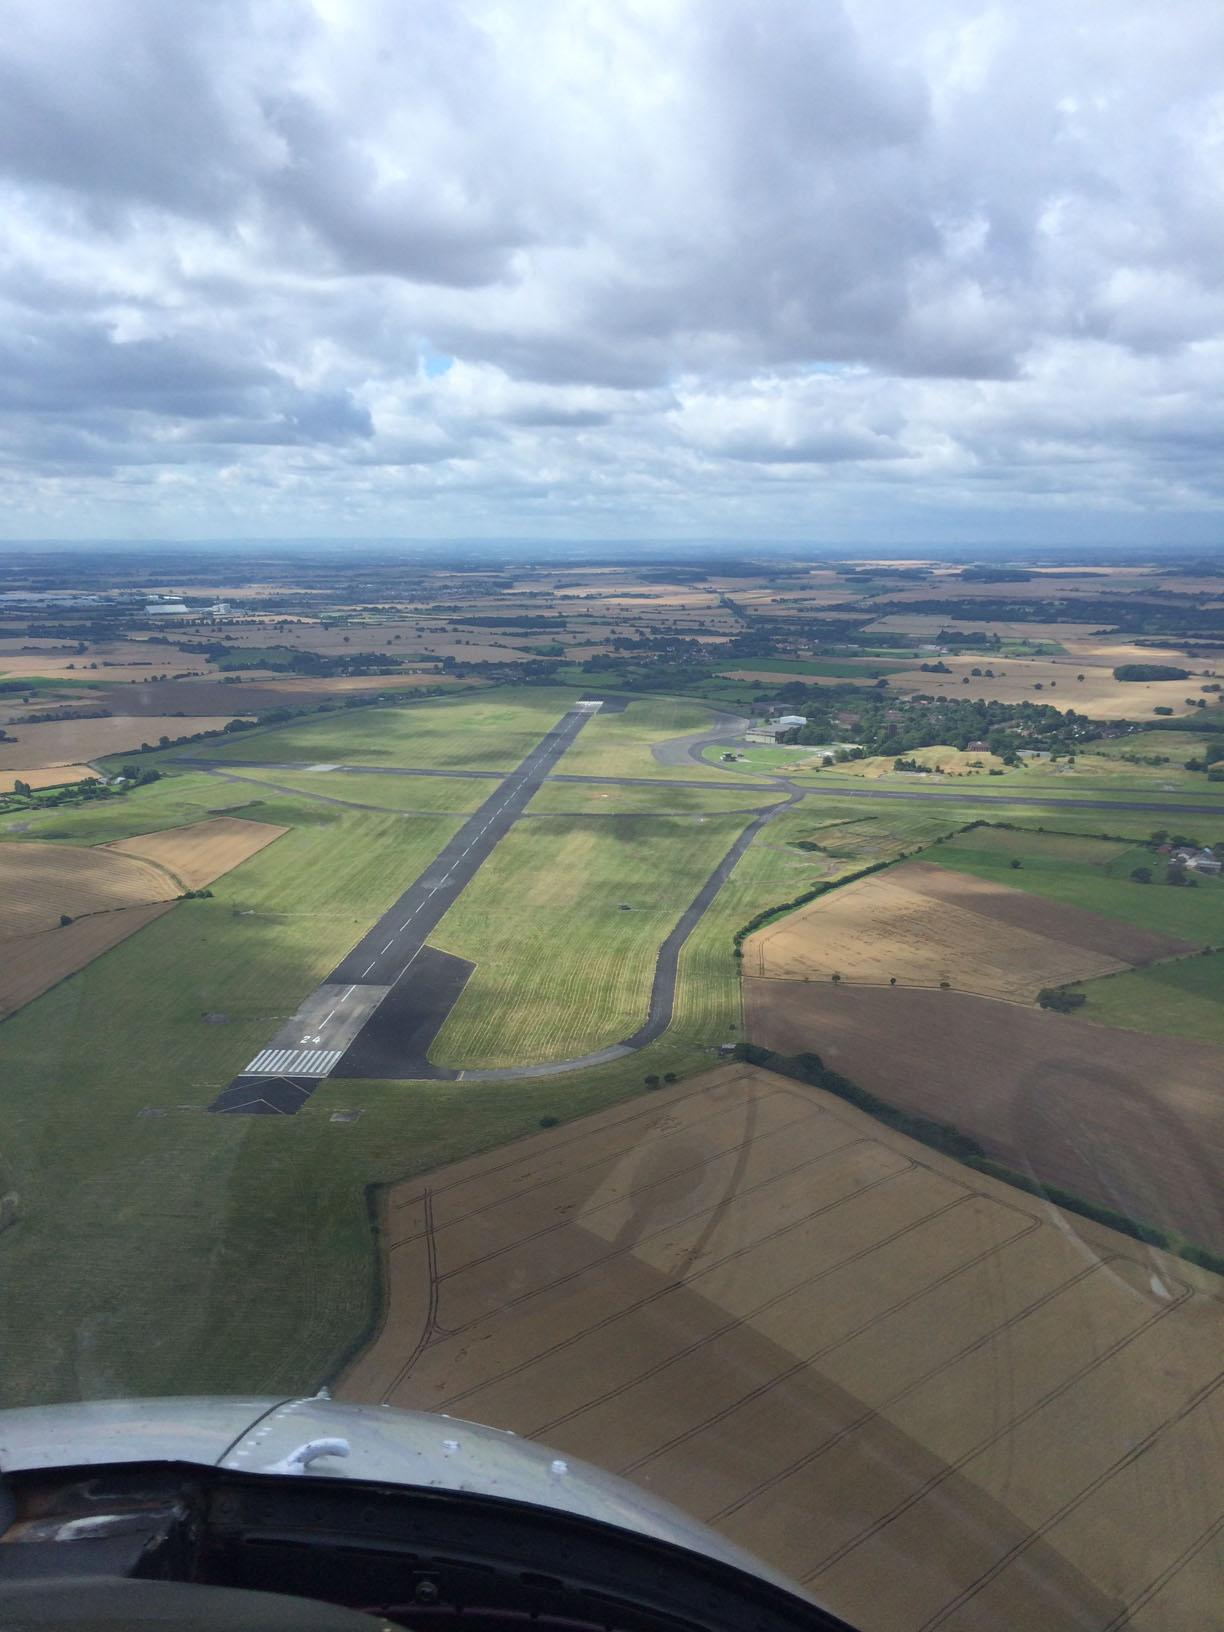 HIGH HOPES: The airfield at Church Fenton from the air